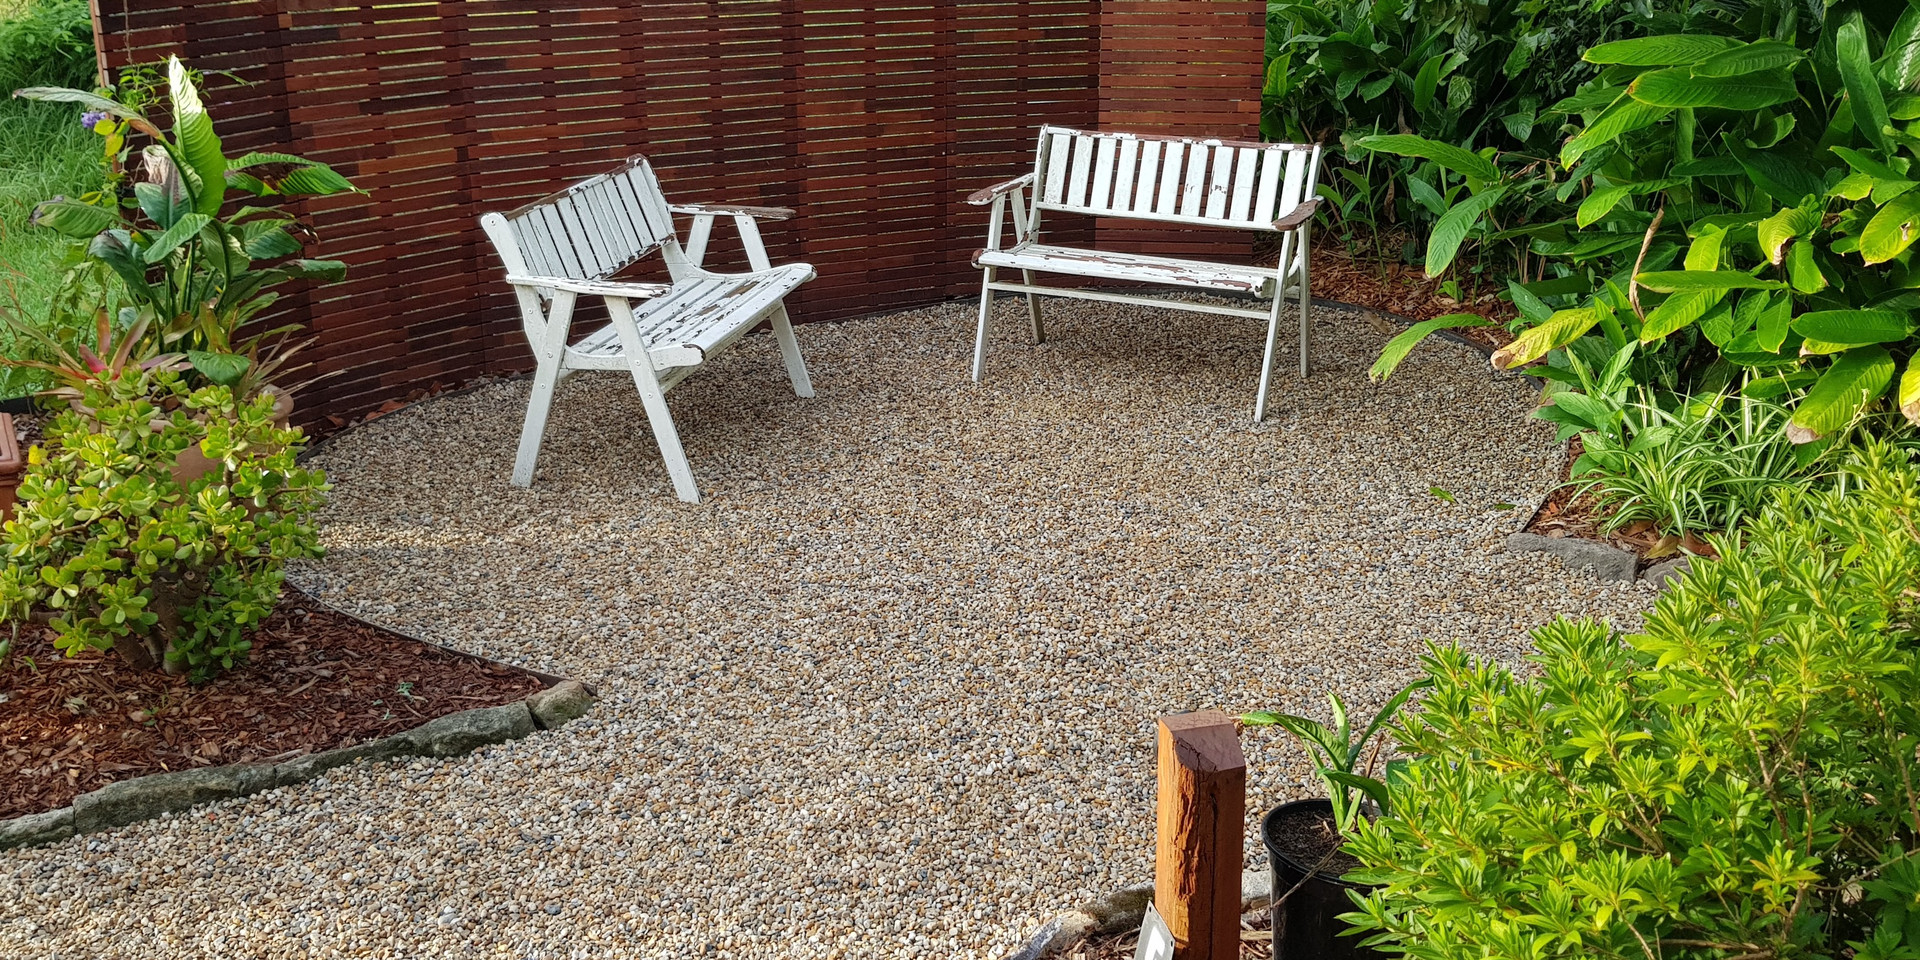 Guest garden nook, perfect for tea or evening drinks